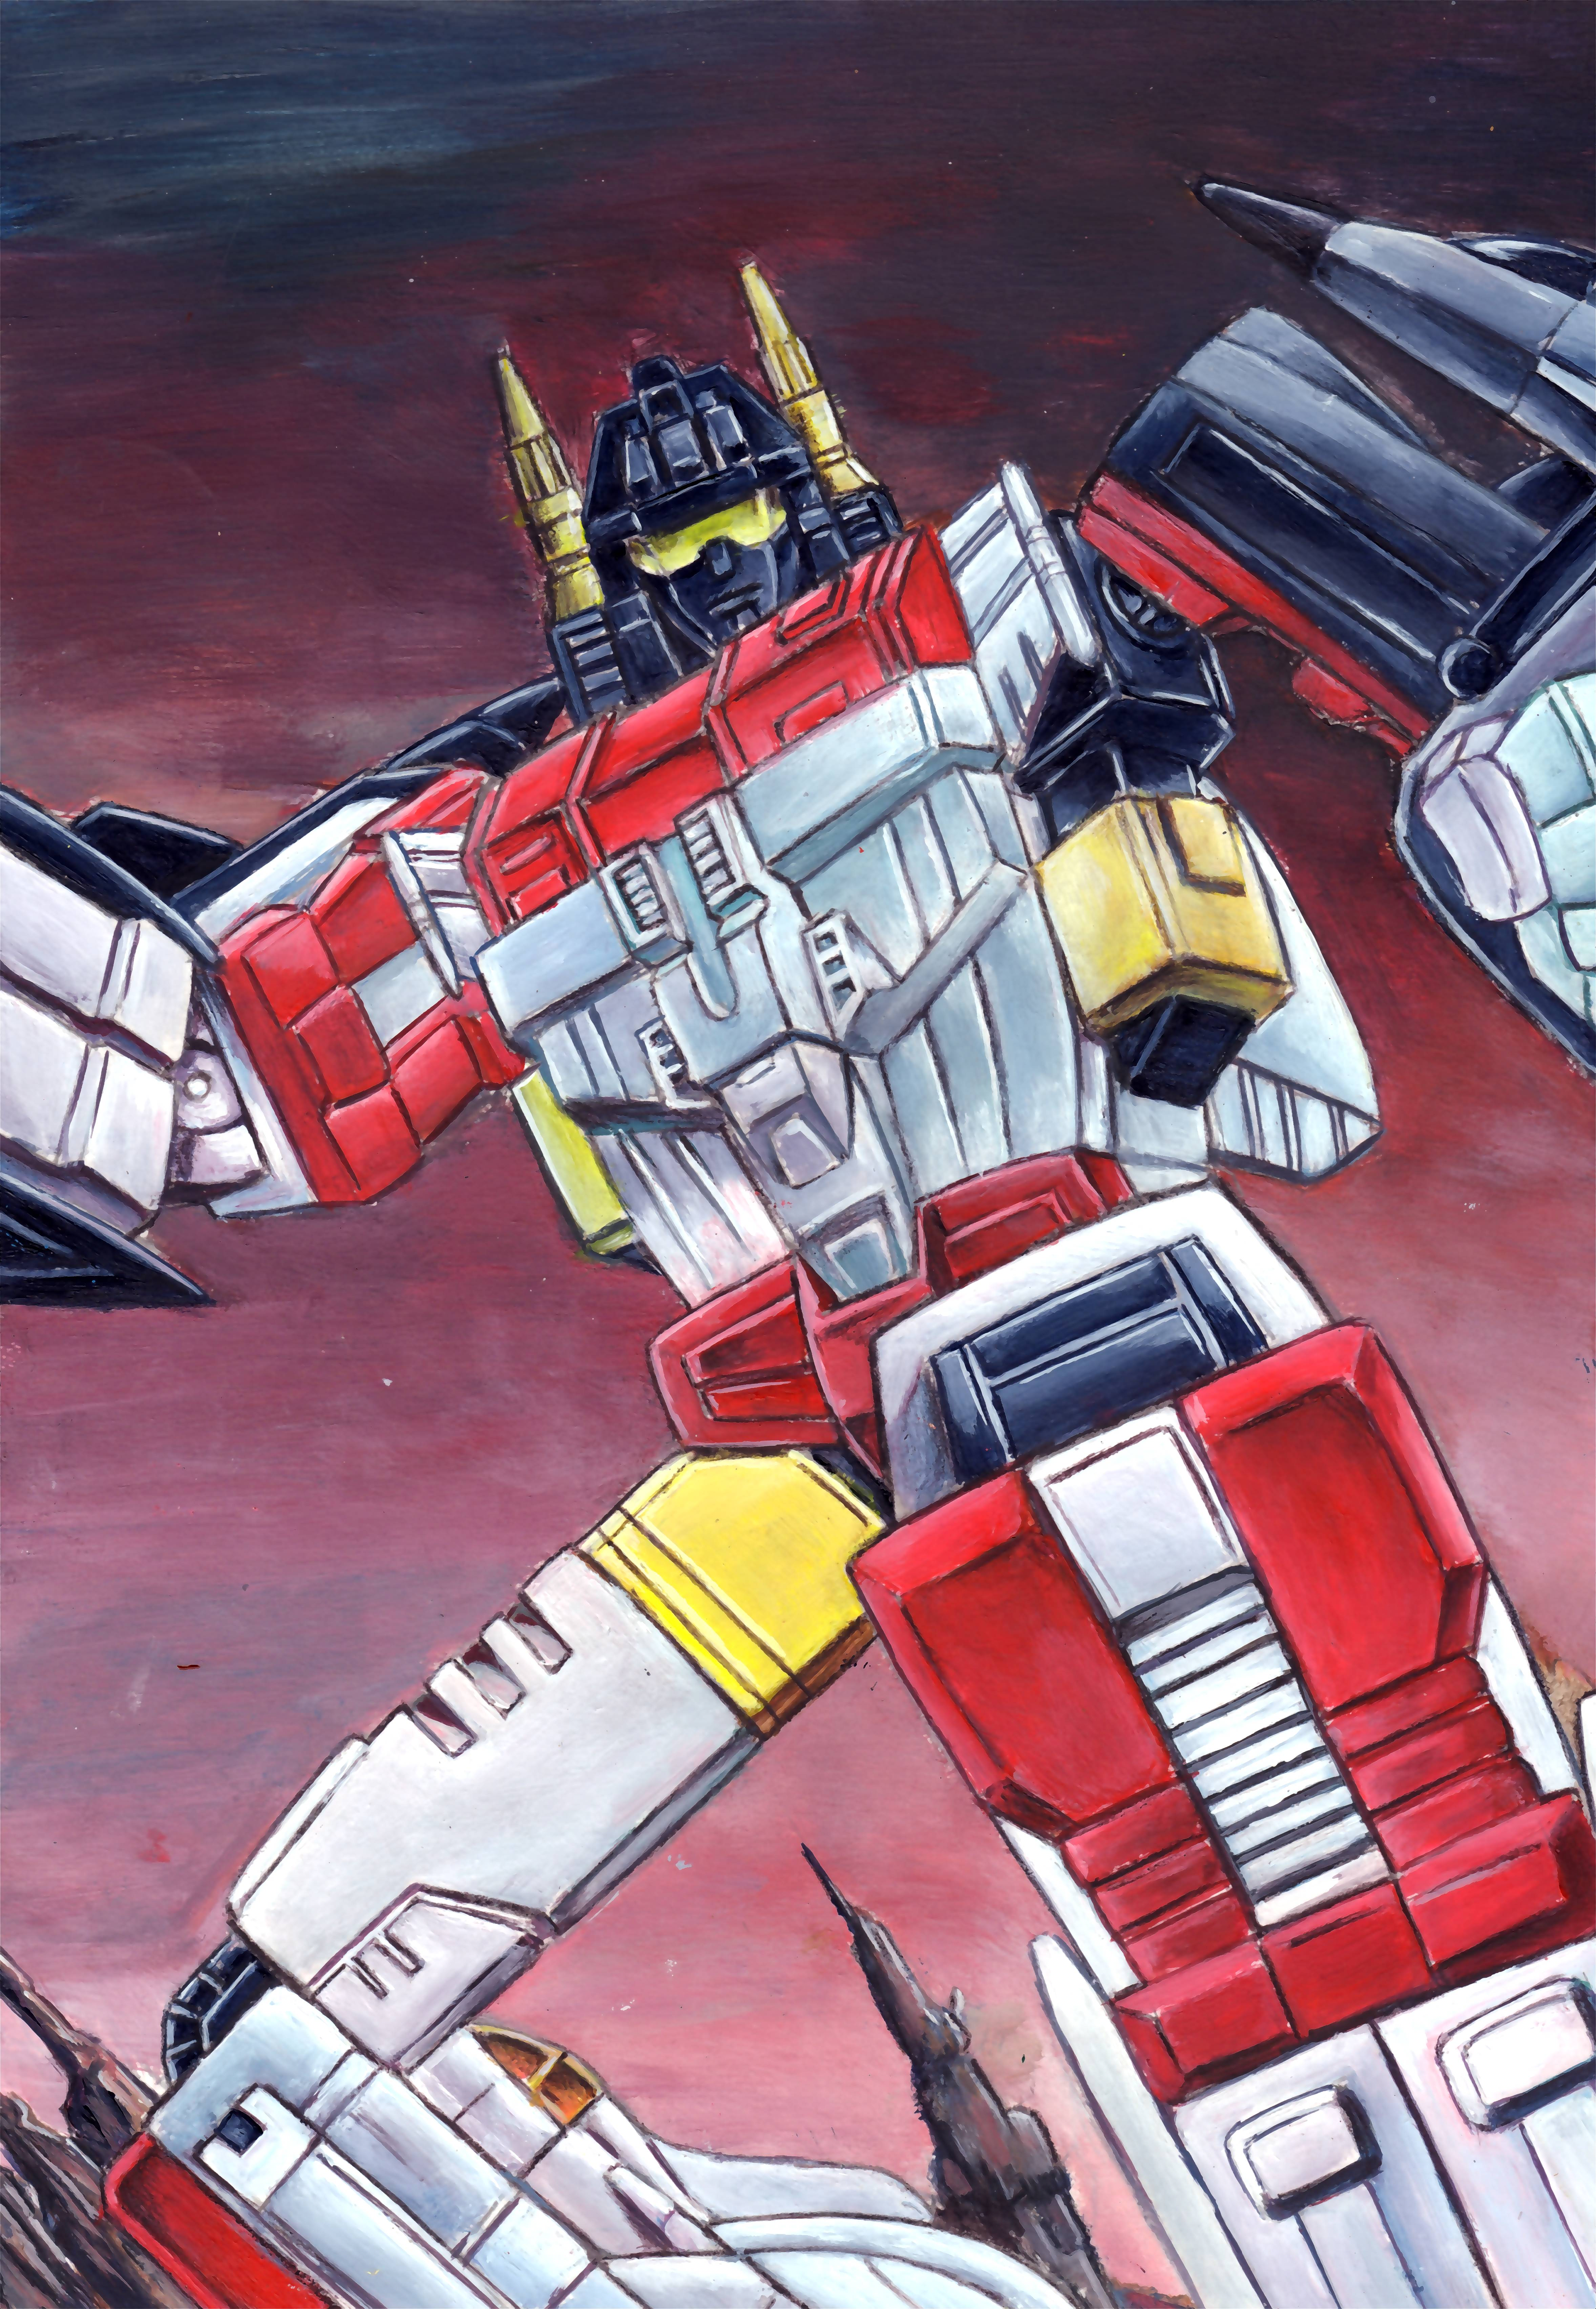 Superion Transformers Image 2310373   Zerochan Anime Image Board 4712x6816